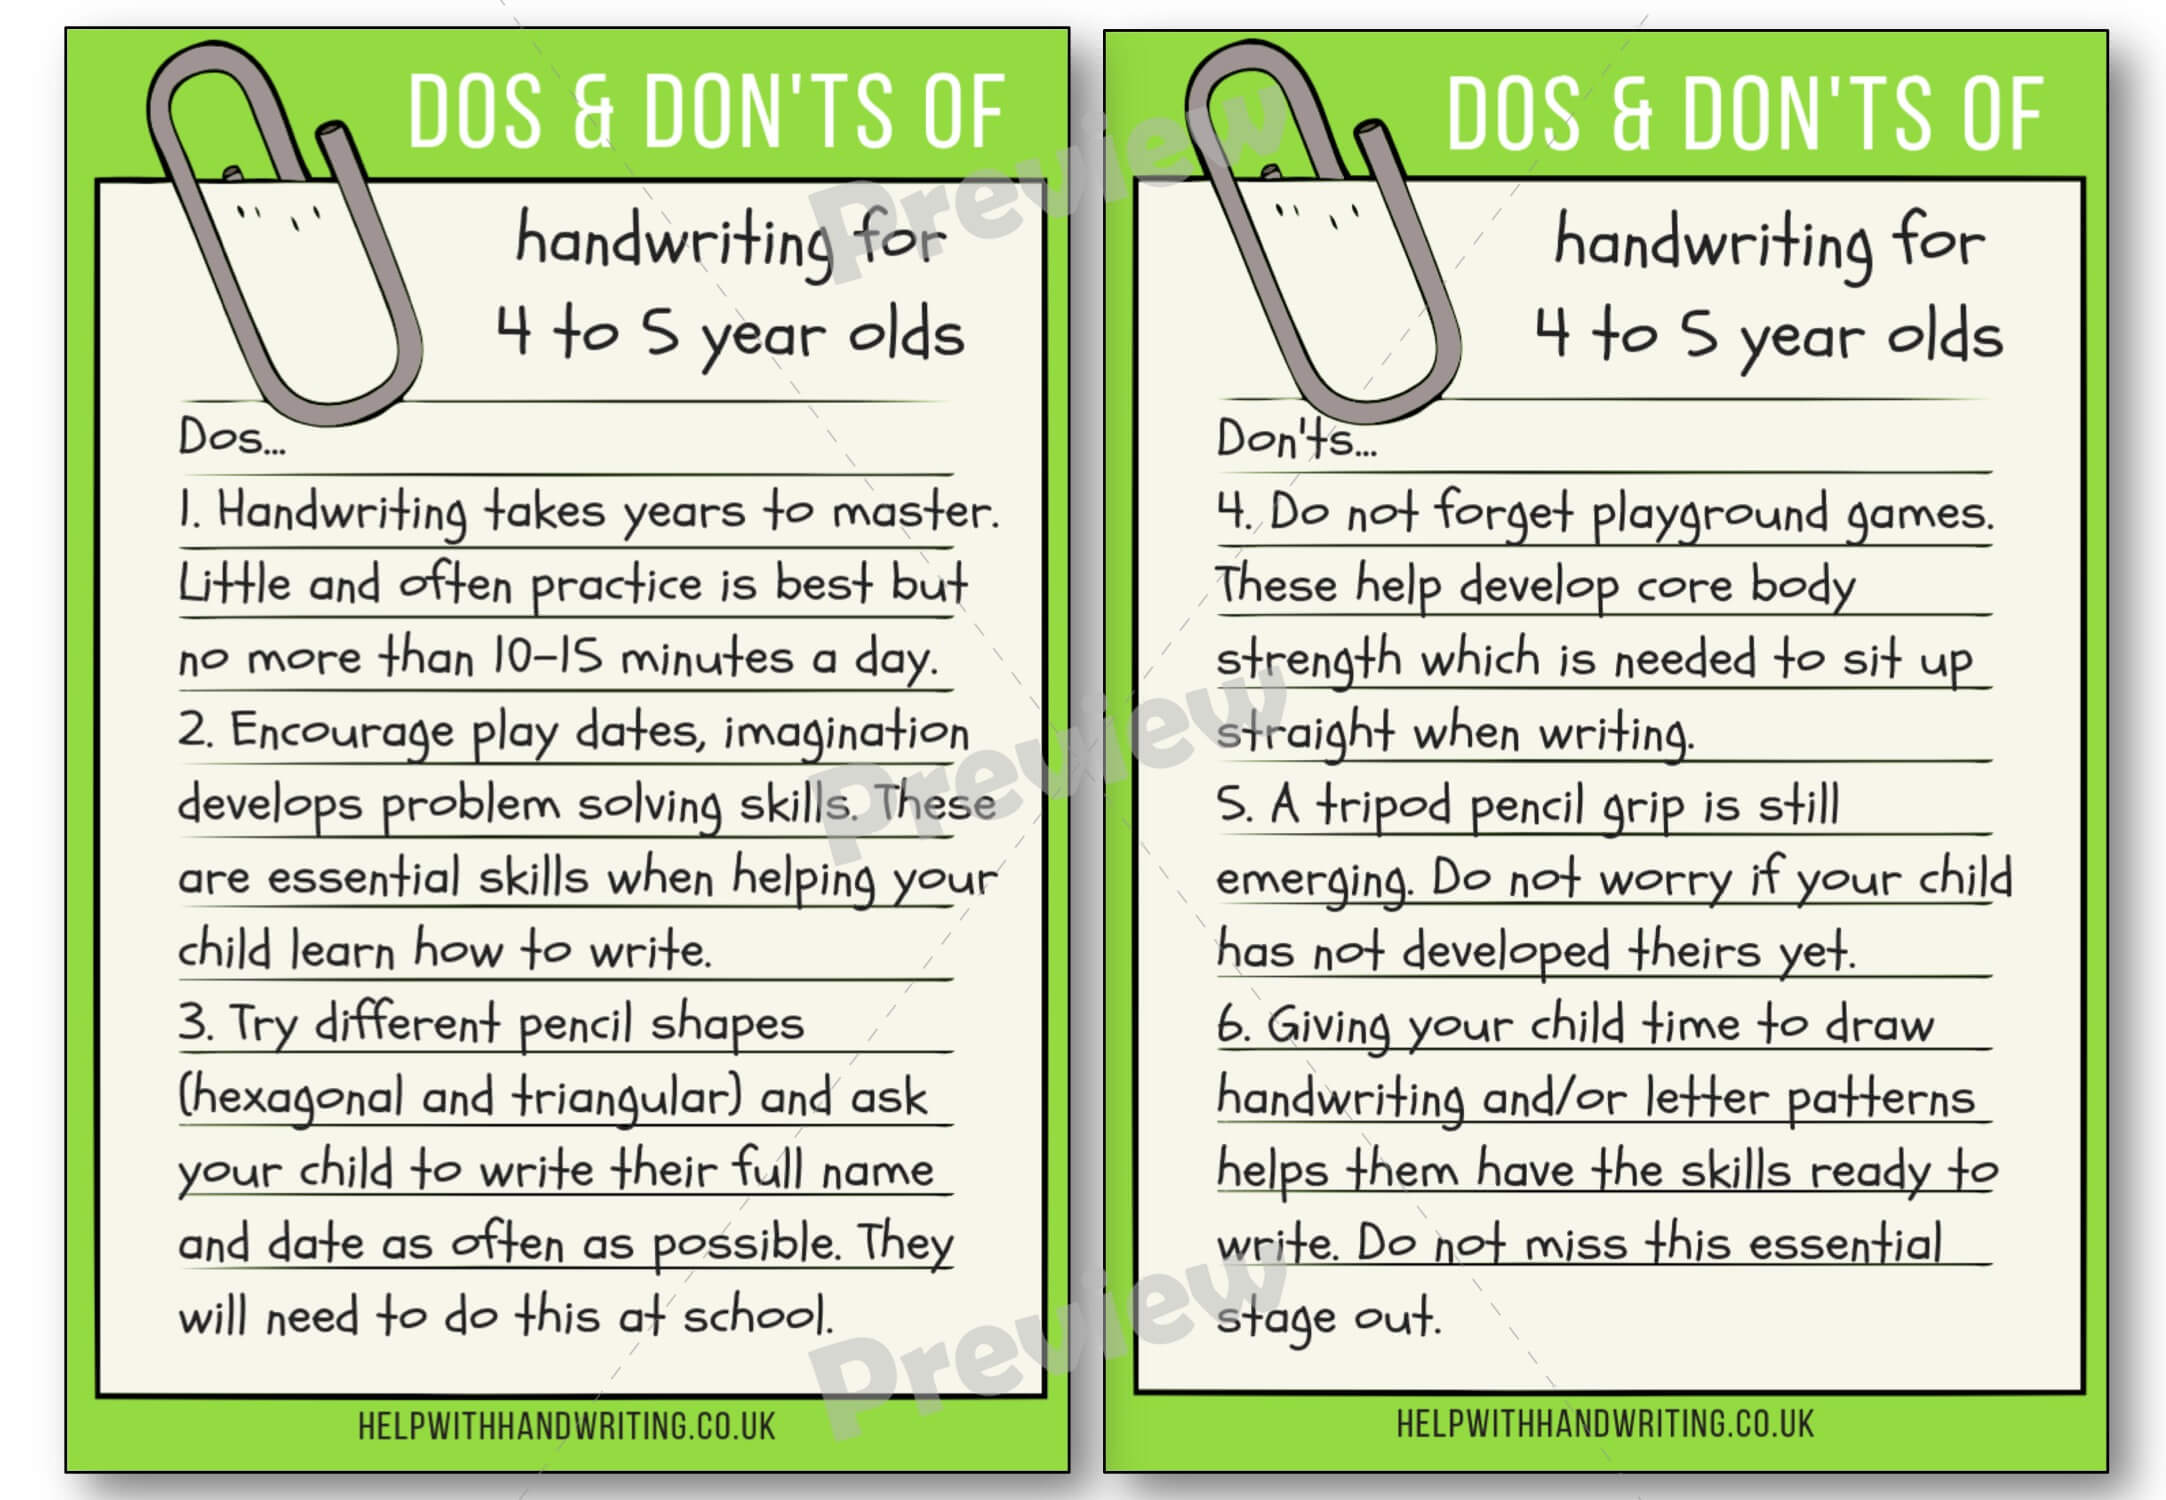 Handwriting dos and don'ts for 4 to 5 years Preview image worksheet